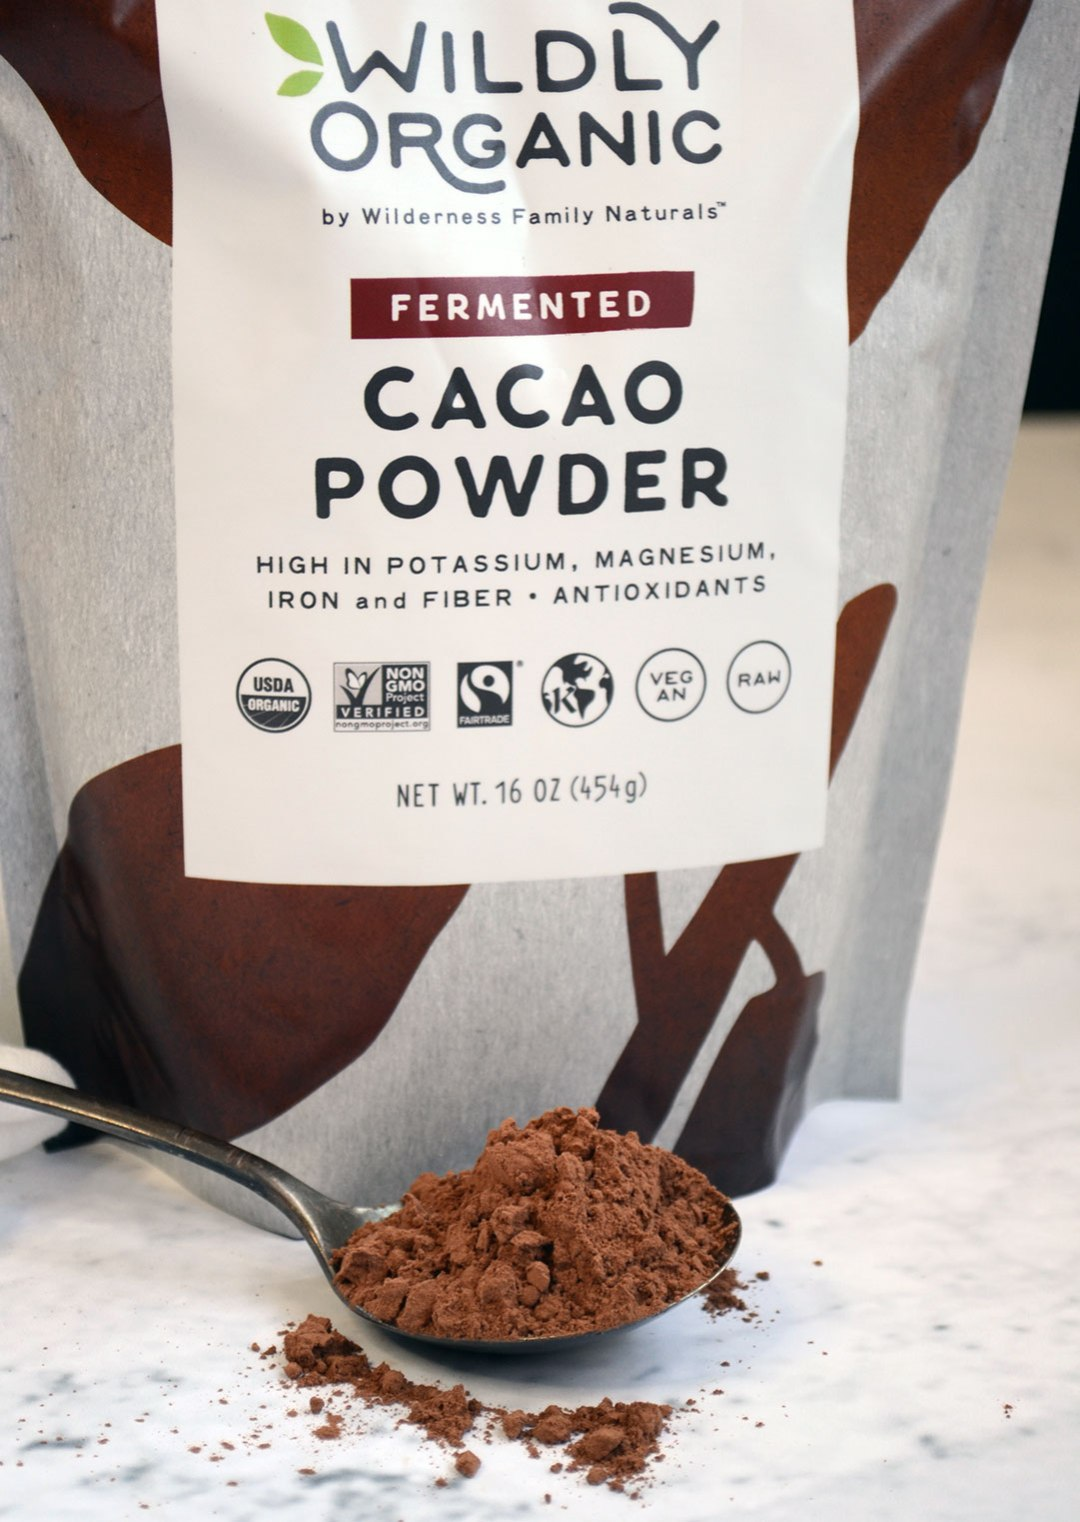 Not only is it extremely high in antioxidants and minerals, Wildly Organic's Cacao Powder is useful and versatile! From skincare to savory foods, here are 10 ways to use cacao powder that you haven't thought of!